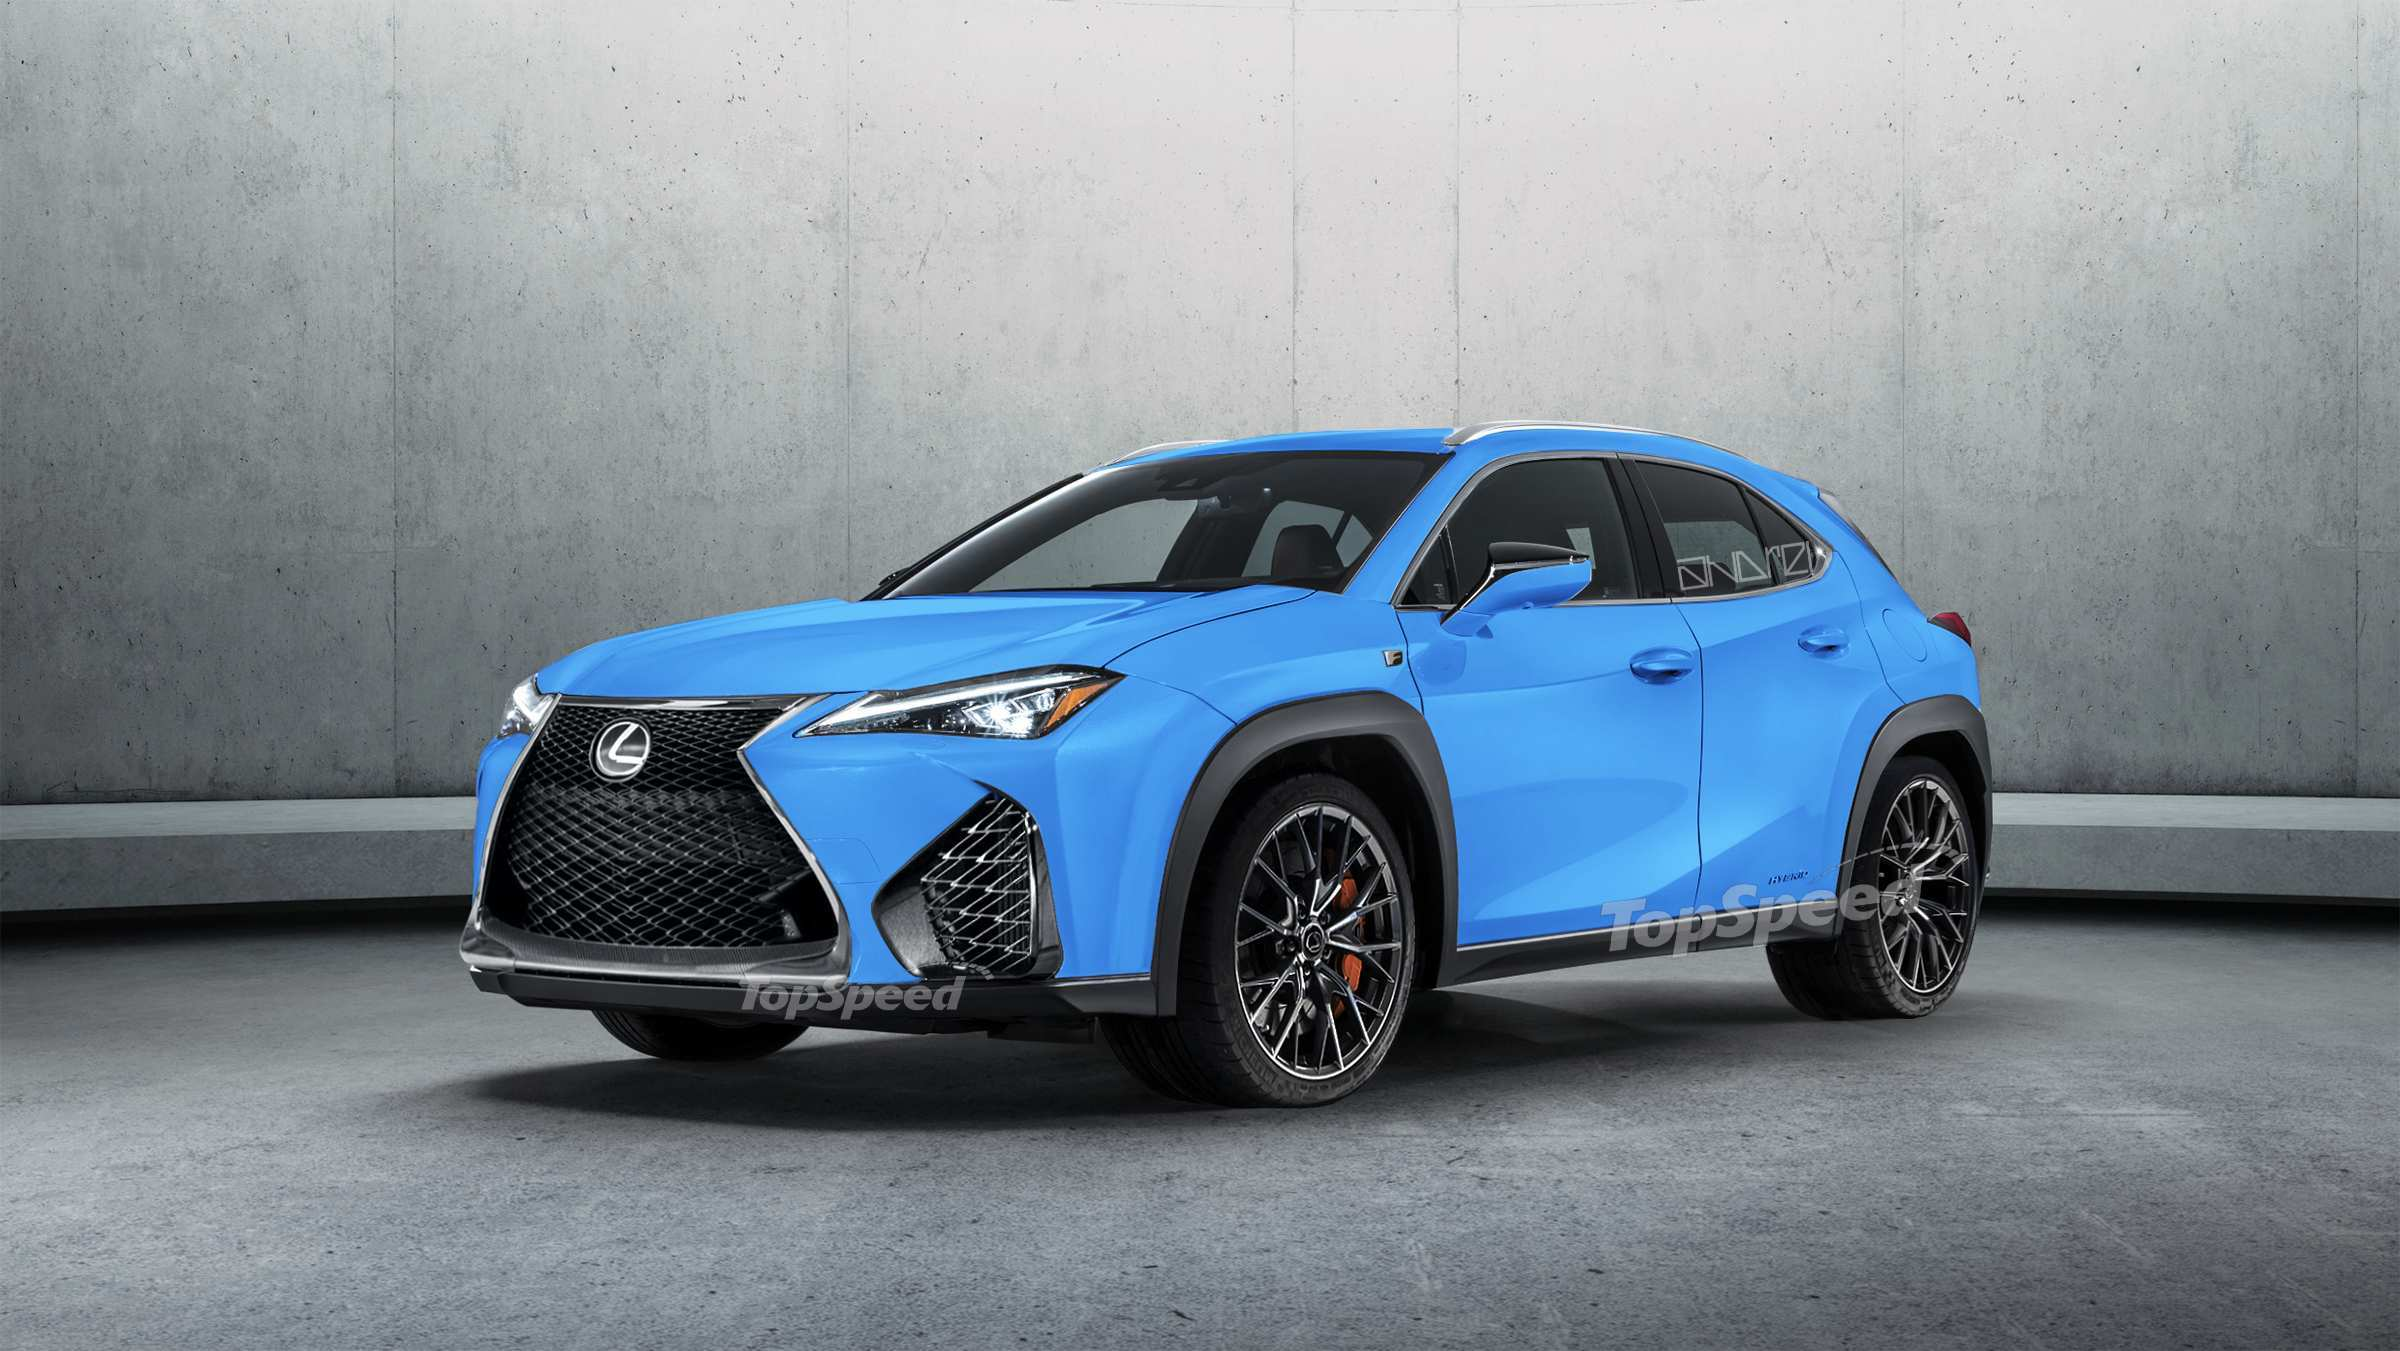 35 All New 2020 Lexus Ux Exterior History with 2020 Lexus Ux Exterior